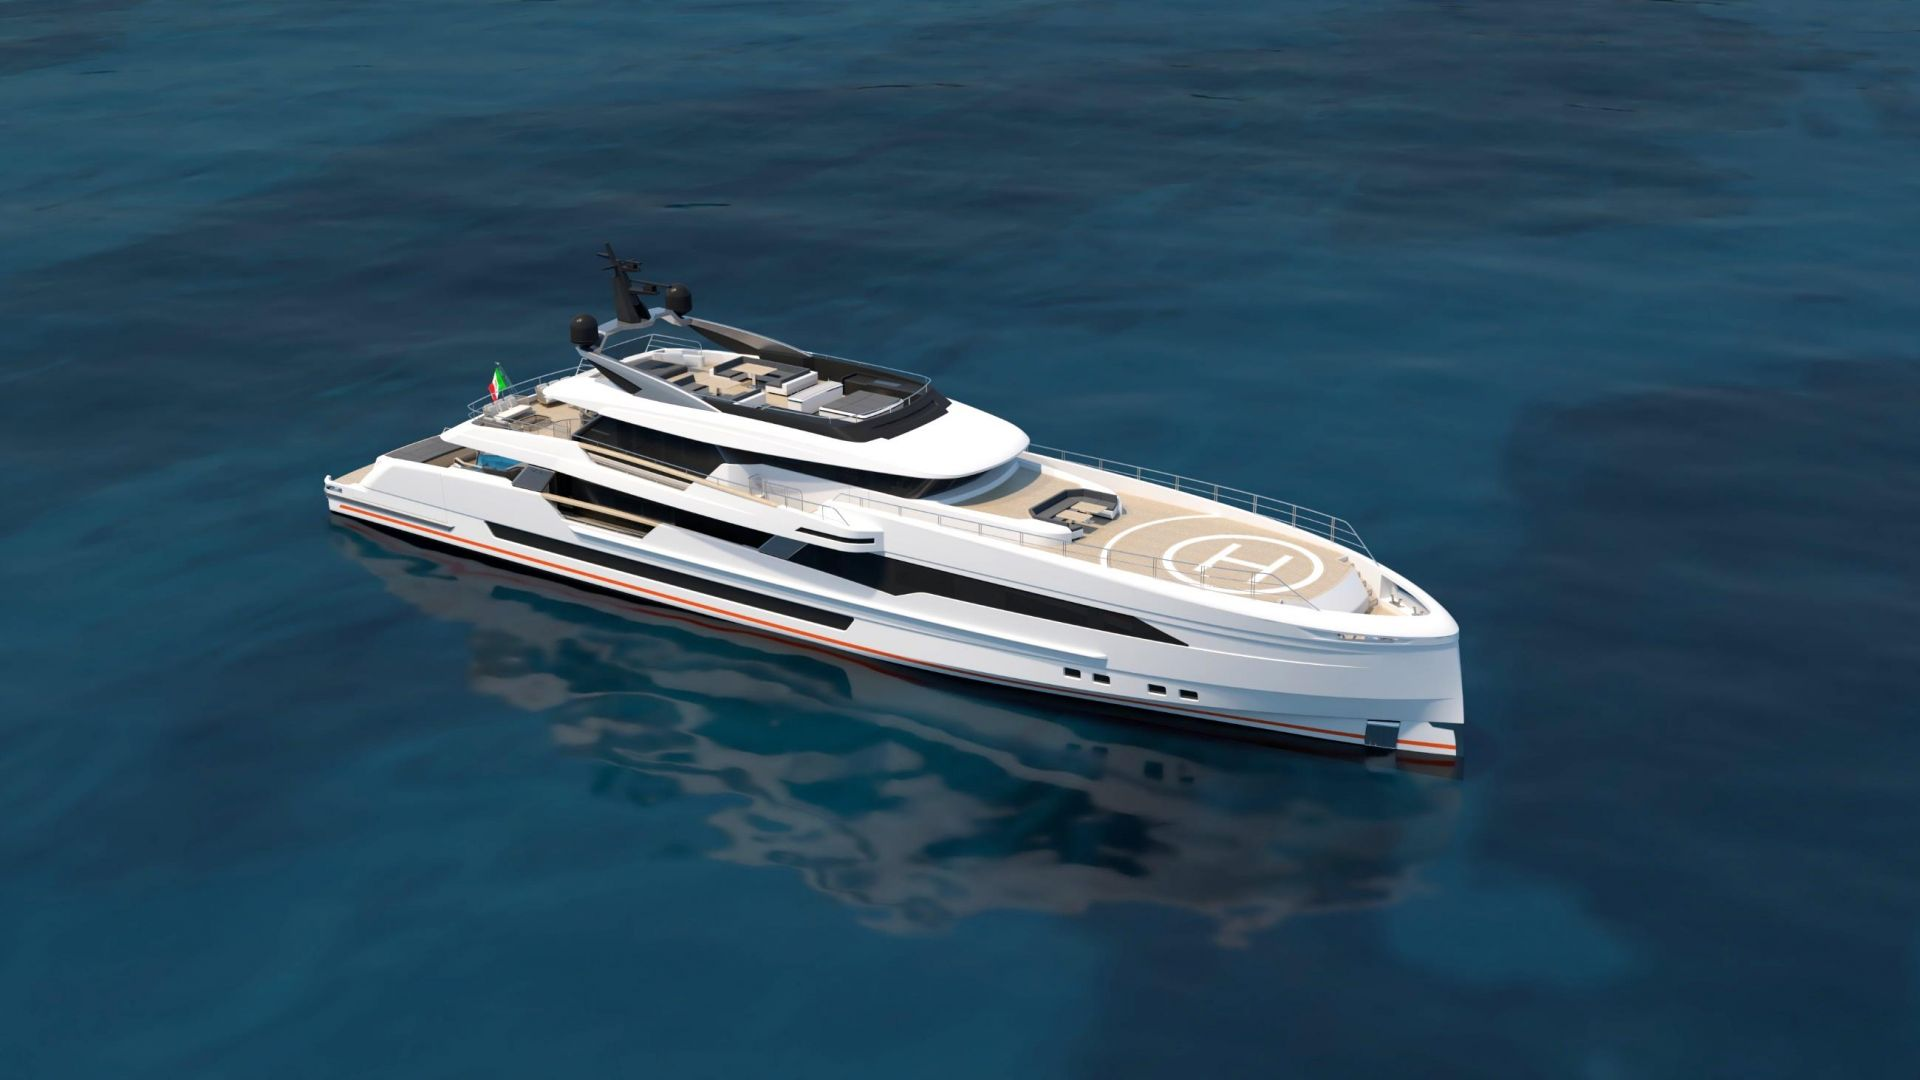 M/Y WIDER 170 yacht for sale overview